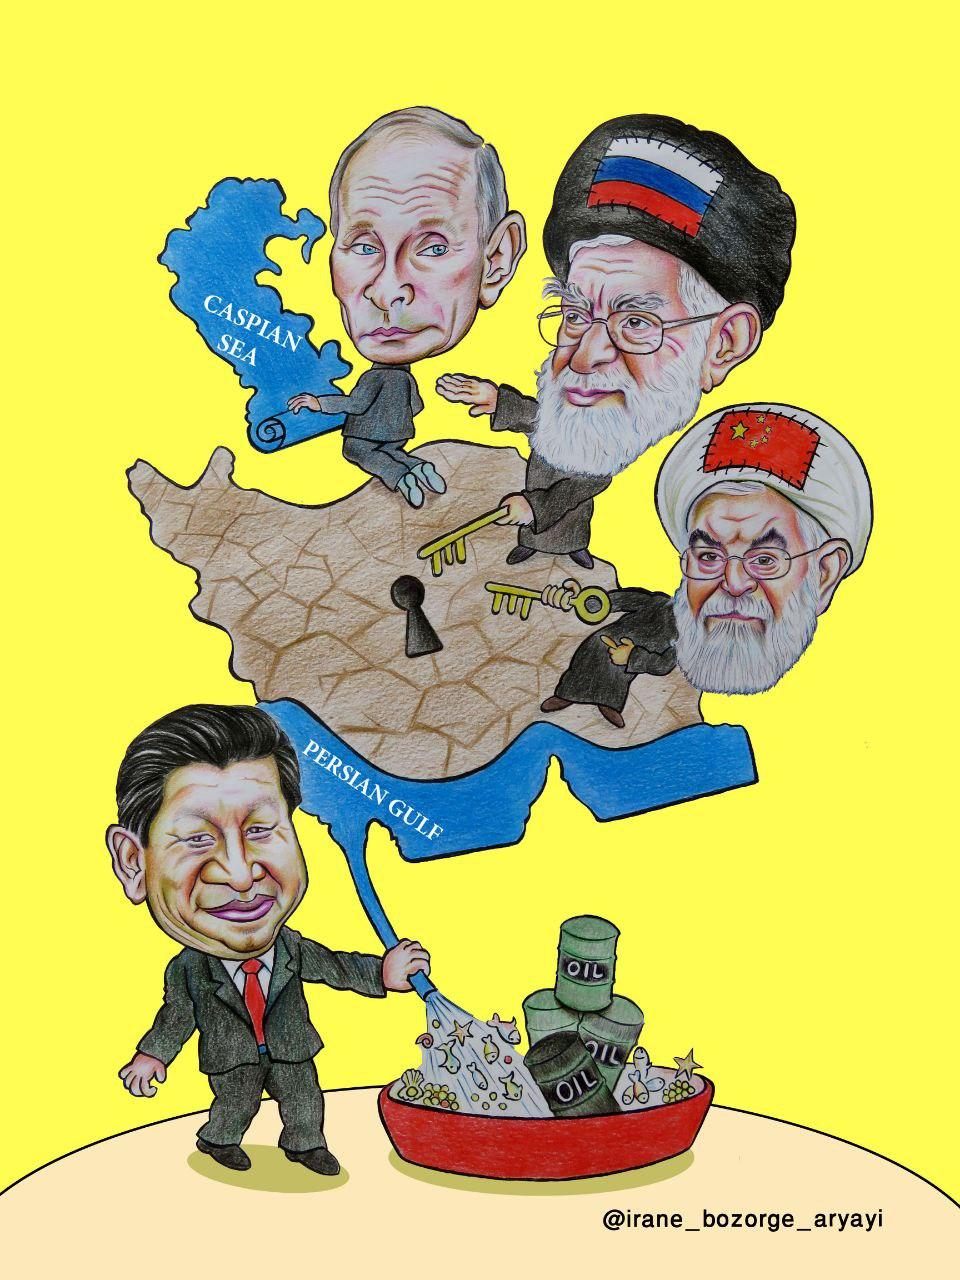 Any deal between the occupying Islamic regime and China will be deemed null and void